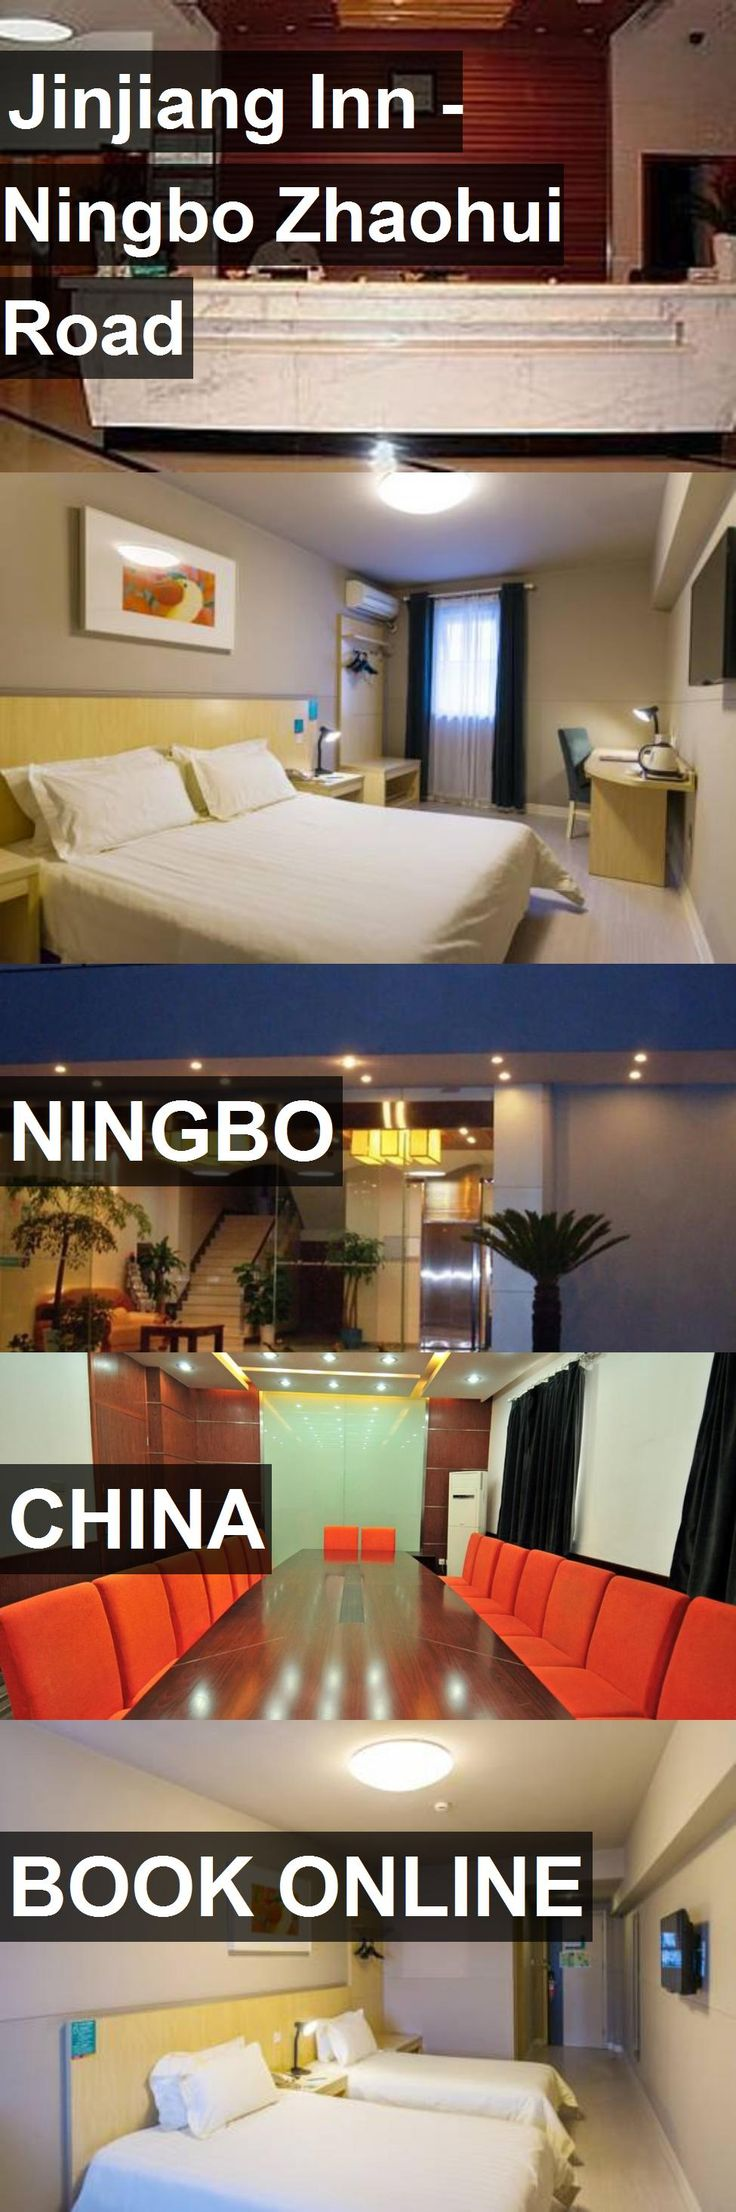 Hotel Jinjiang Inn - Ningbo Zhaohui Road in Ningbo, China. For more information, photos, reviews and best prices please follow the link. #China #Ningbo #travel #vacation #hotel